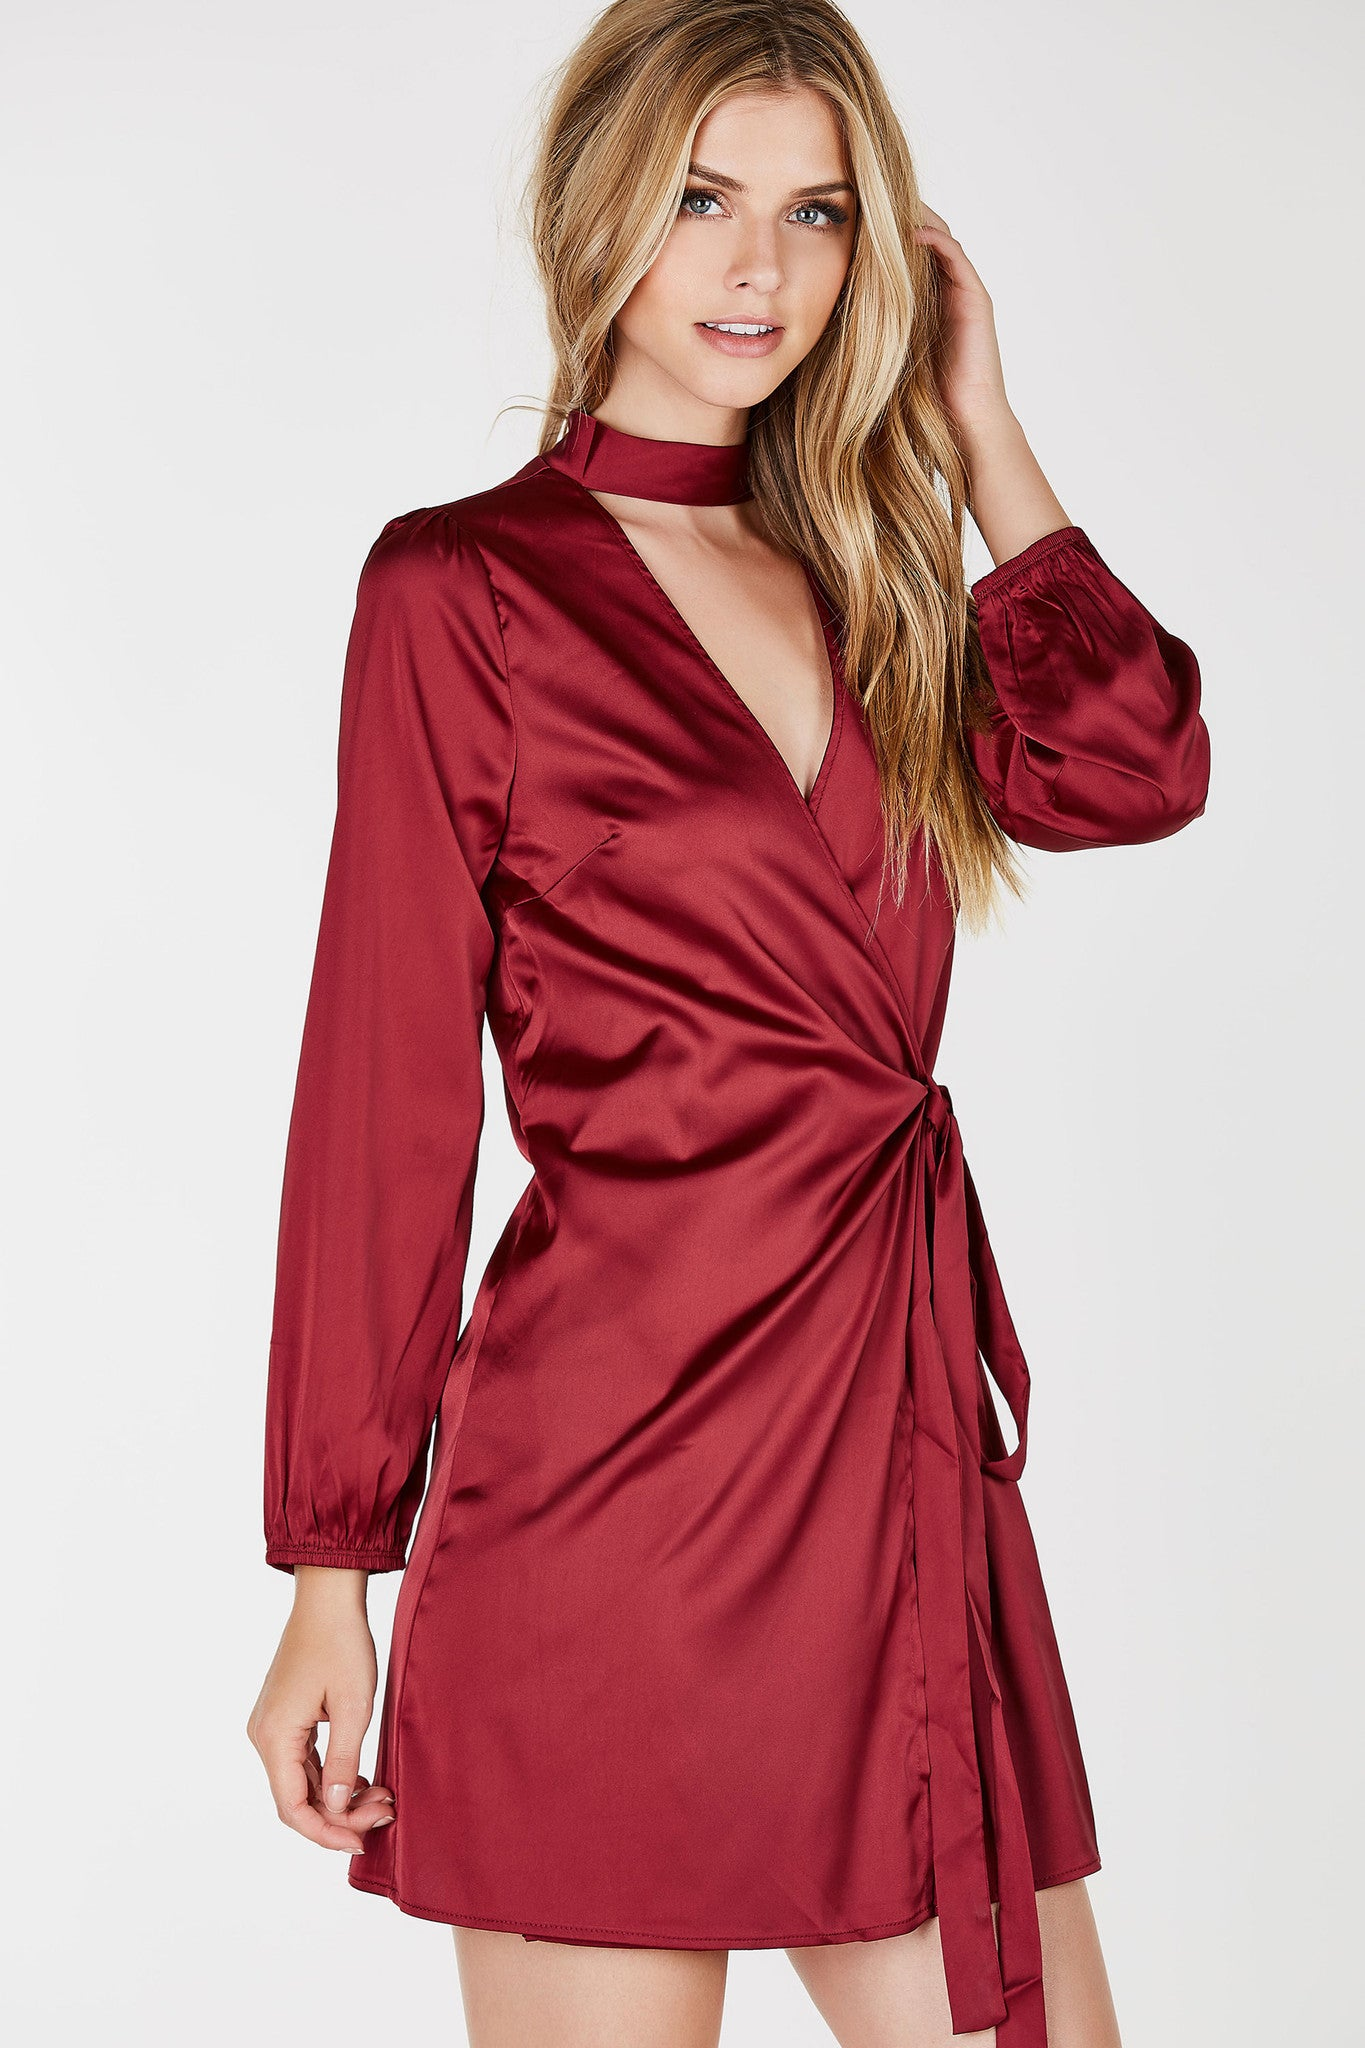 Long sleeve satin finish dress with wrap design. Front tie closure with choker neckline and deep V-cut out.